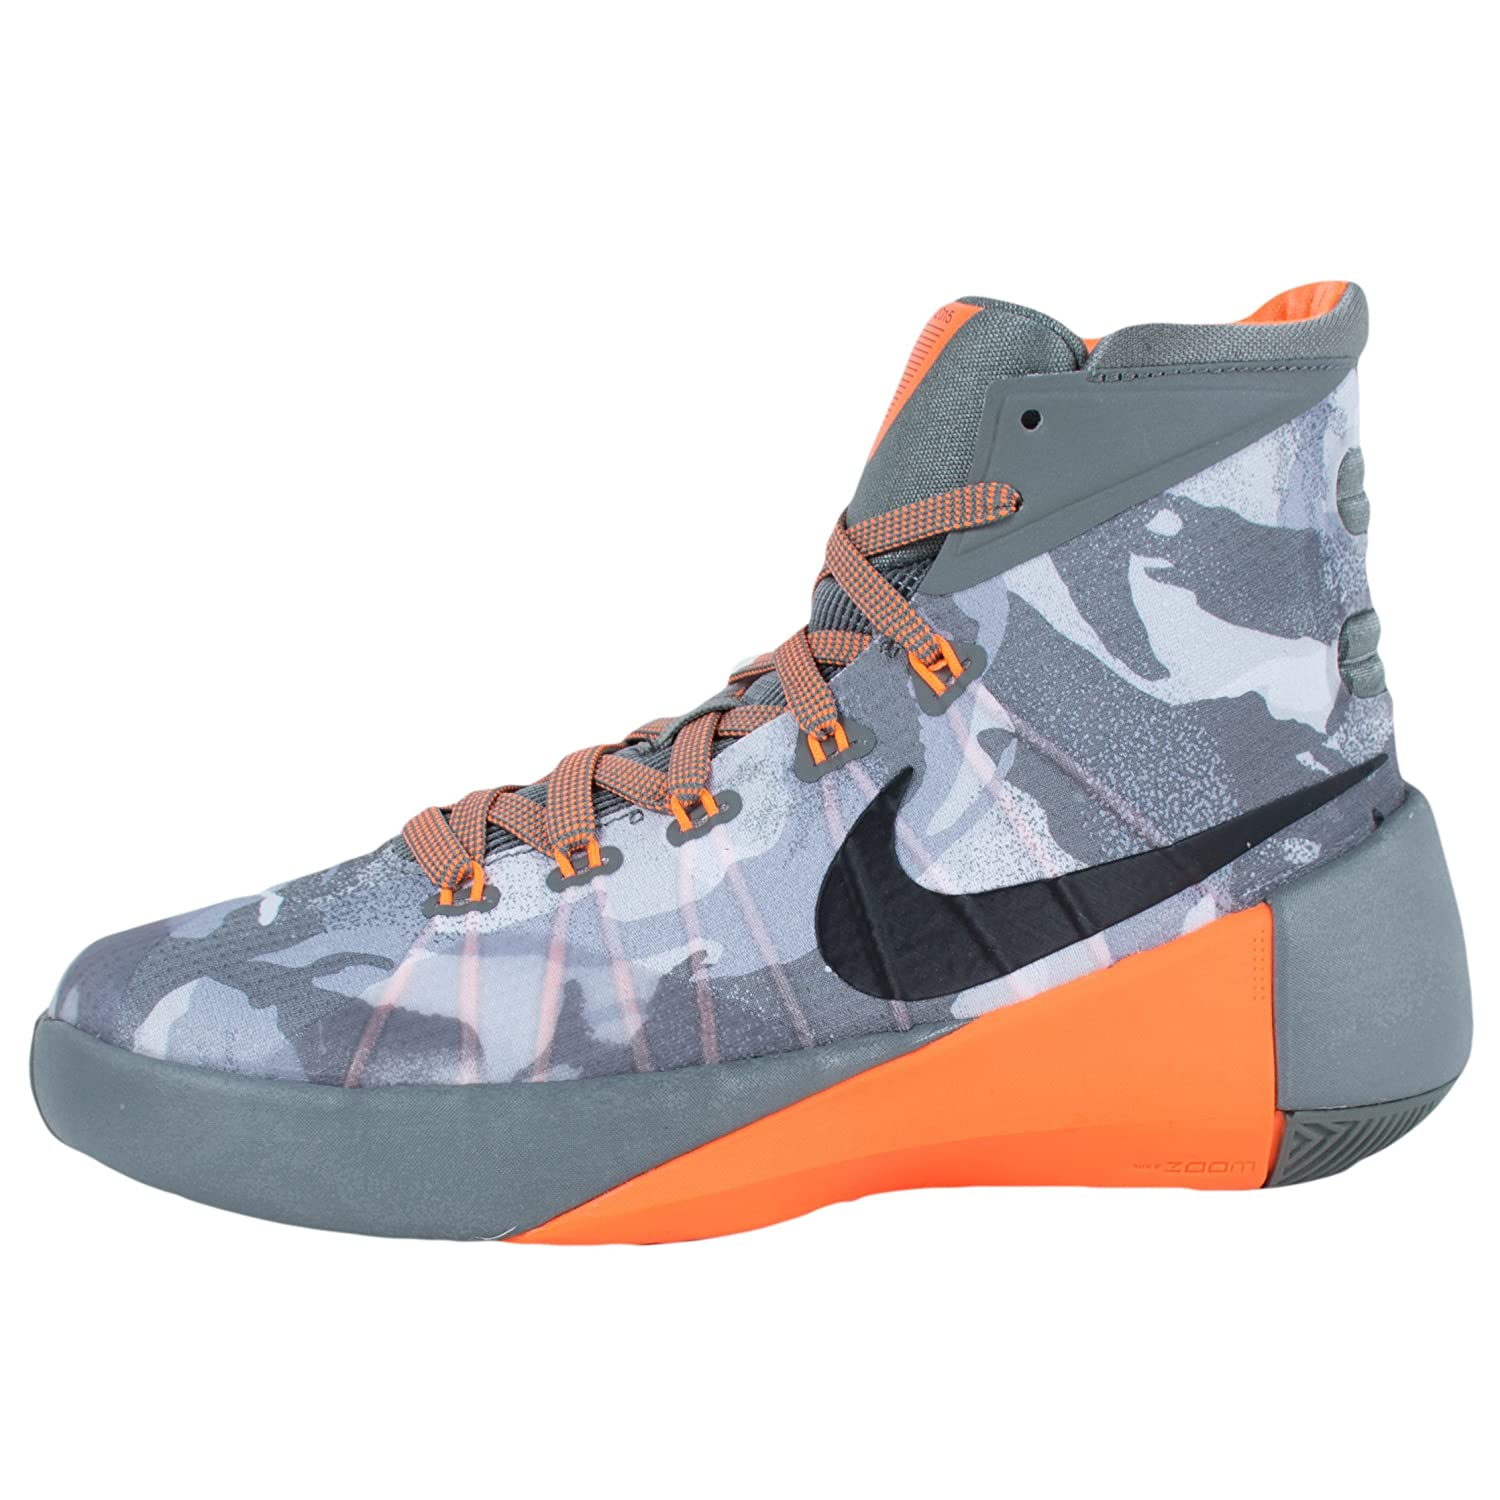 3f004152c7a3 Nike Boy s Hyperdunk 2015 (GS) Basketball Shoe Tumbled Grey Silver Grey Black  Size 6. 5 M US  Buy Online at Low Prices in India - Amazon.in